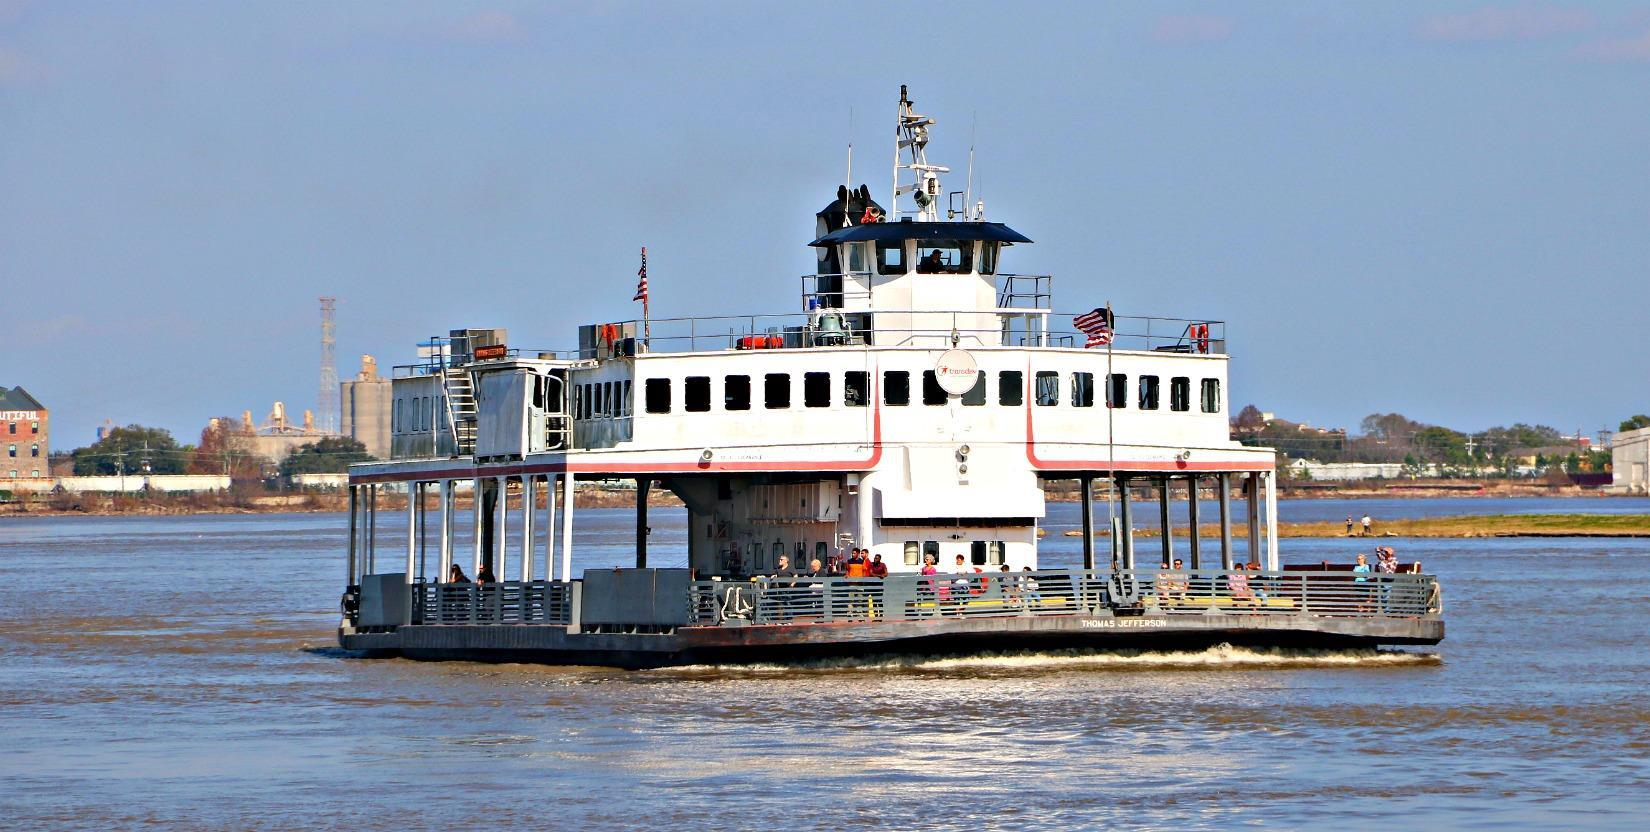 WarehouseDistrictWalkFerry.jpg